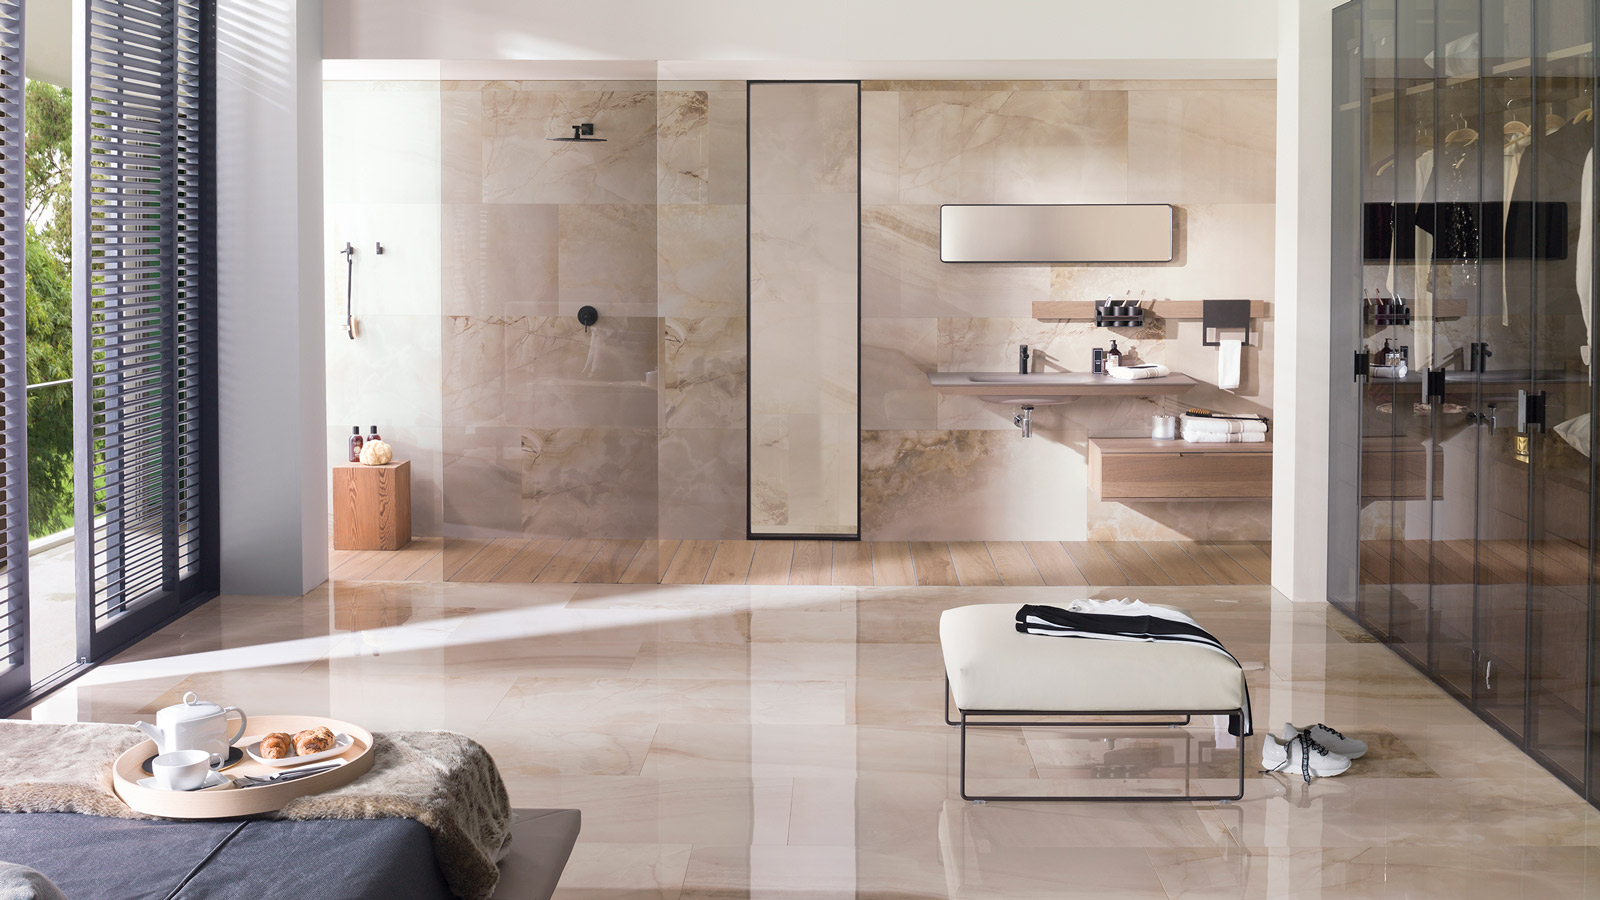 Sochi by Porcelanosa, an ultra refined ceramic tile inspired by onyx